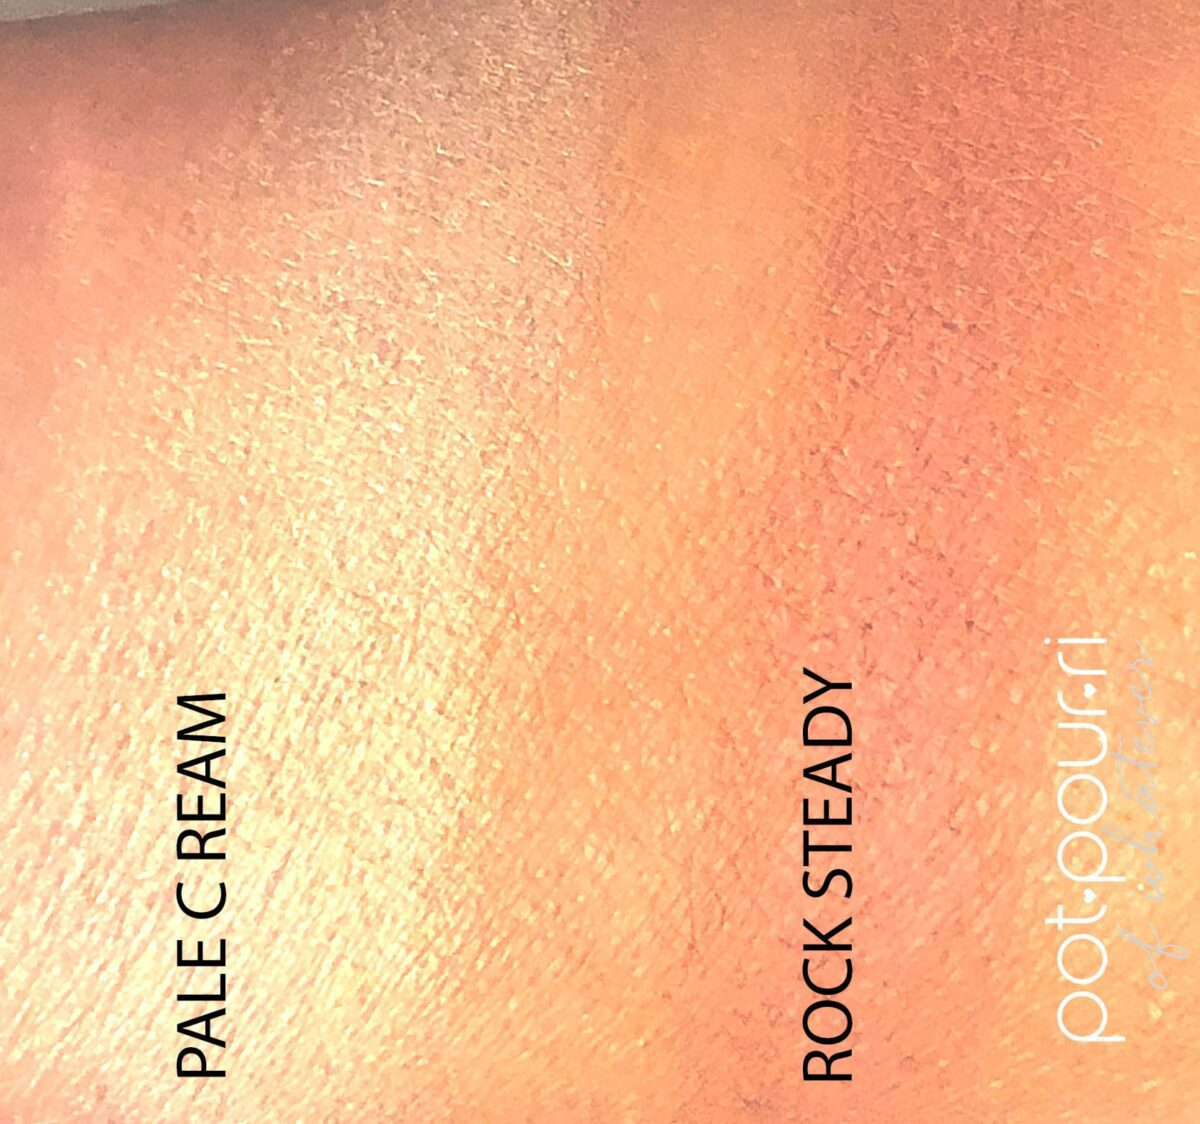 SWATCHES OF PALE CREAM, A BASE SHADE, AND ROCK STEADY, A CREASE TRANSITION SHADE